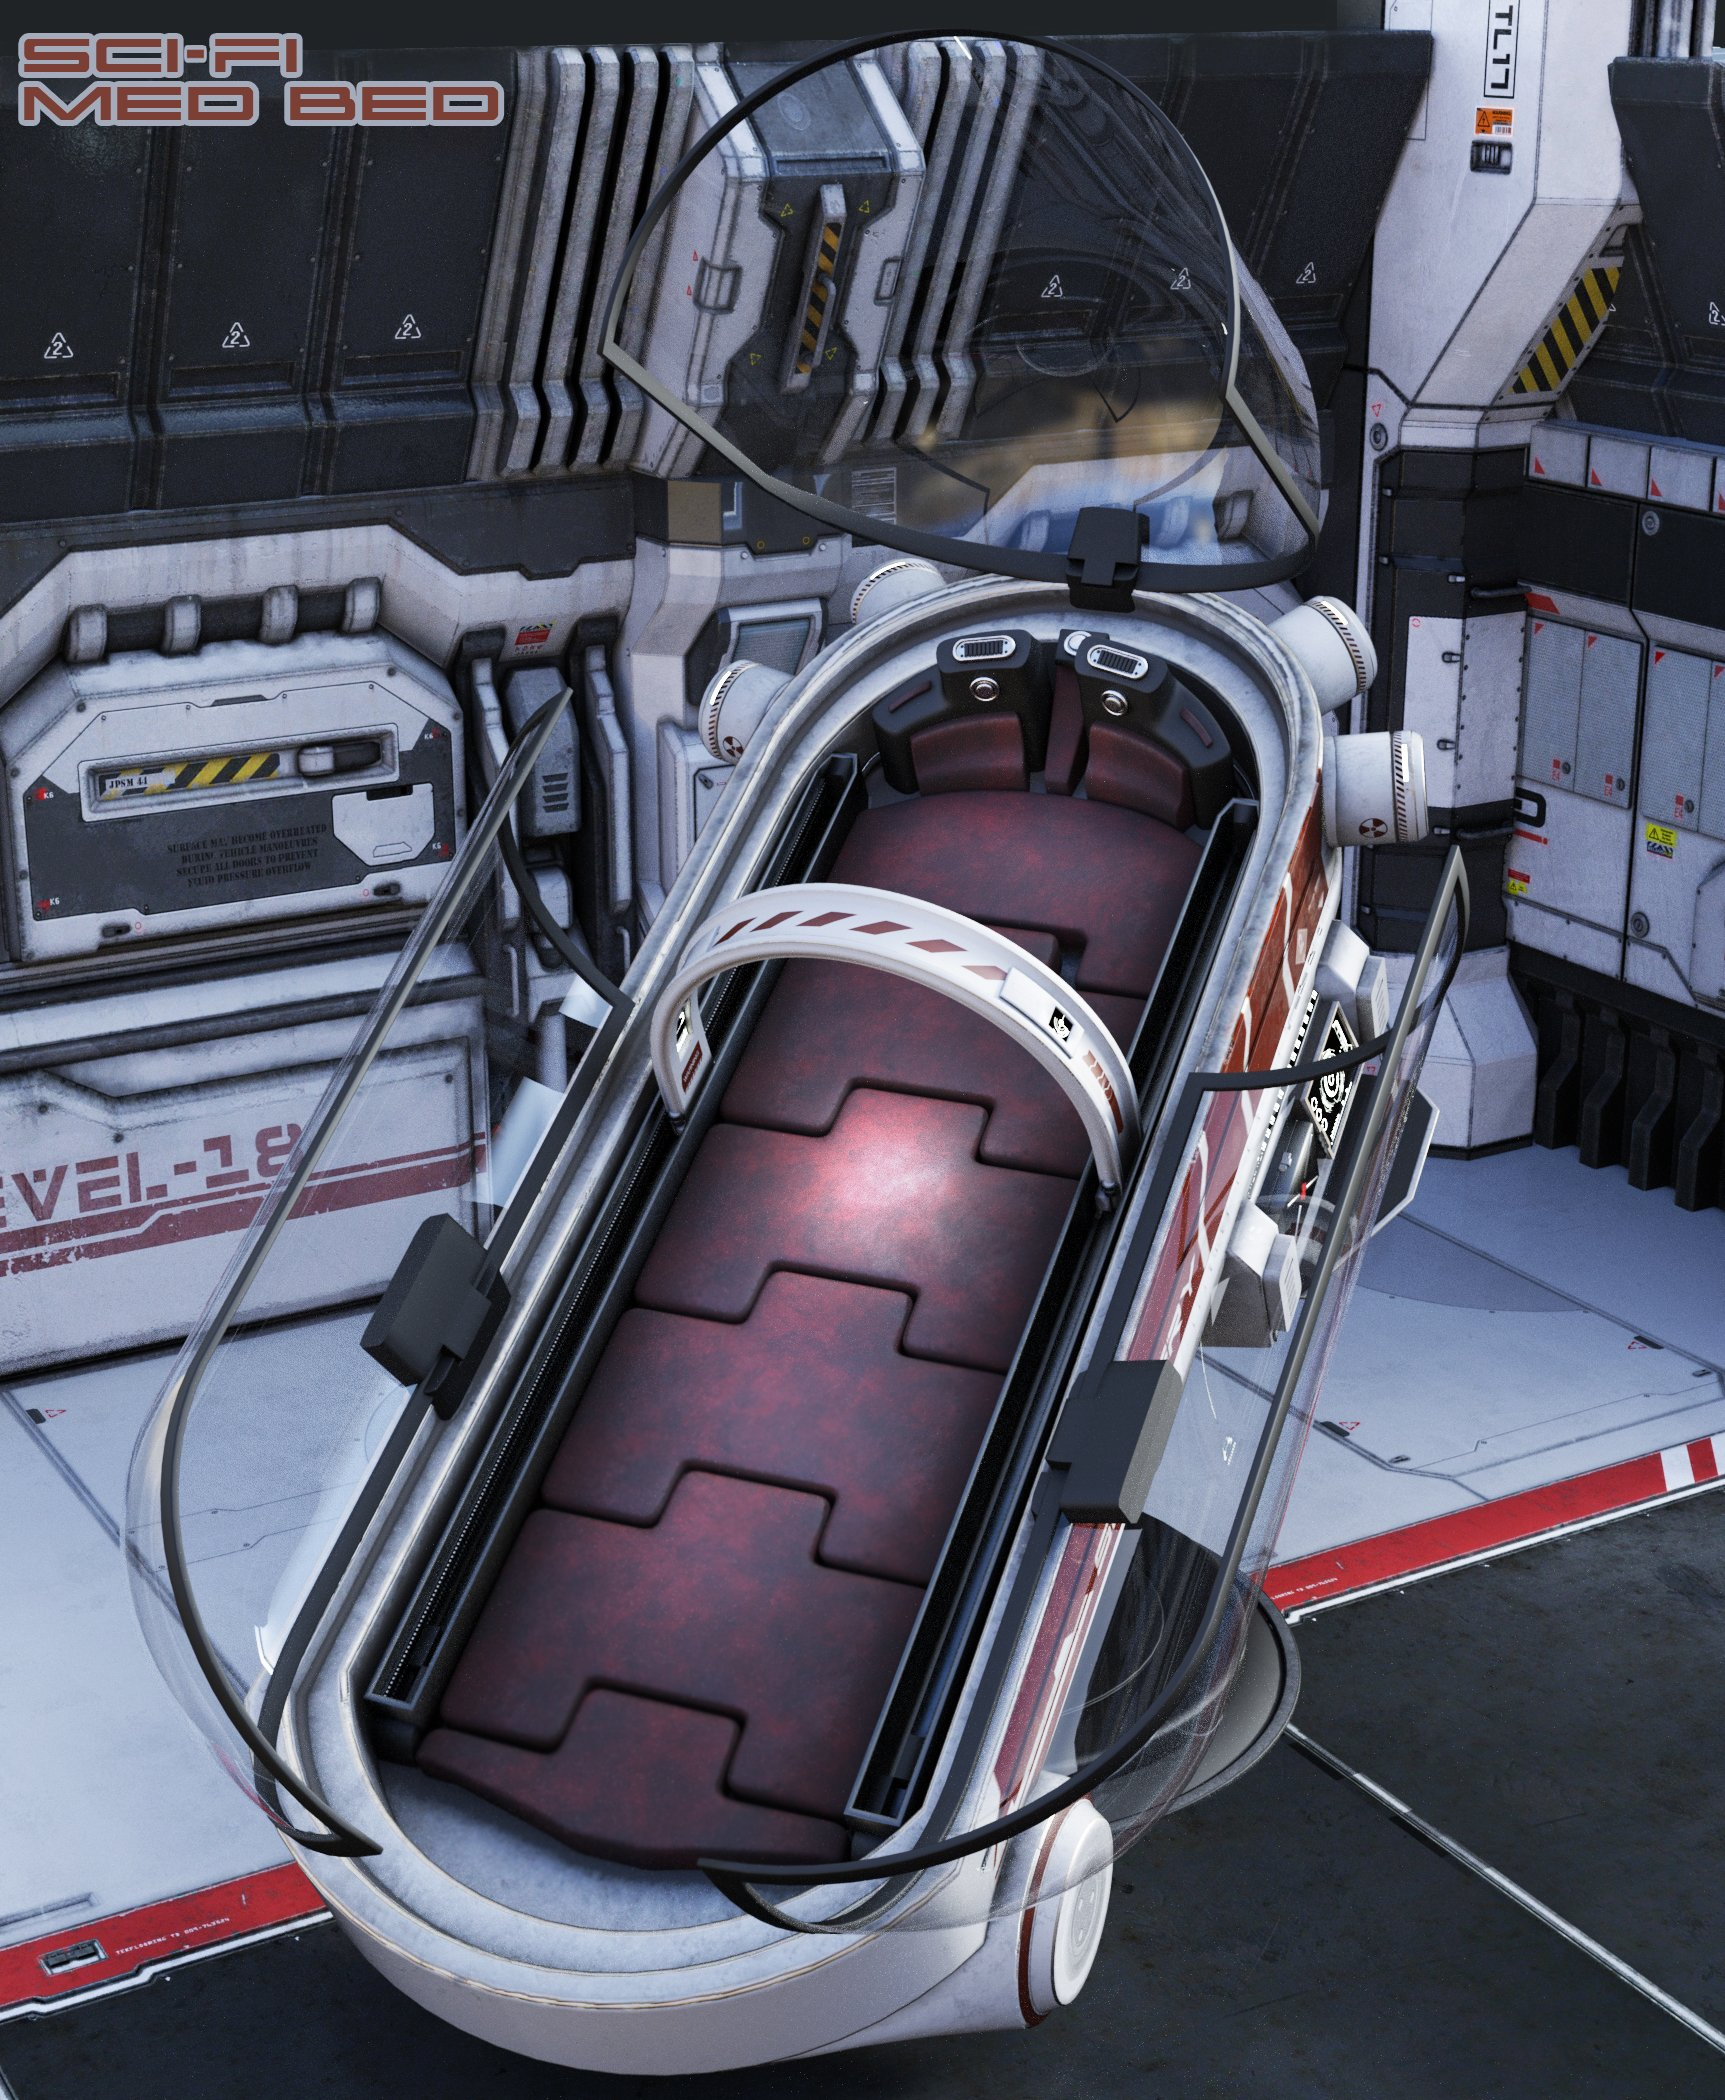 Sci-Fi Med Bed by: The AntFarm, 3D Models by Daz 3D